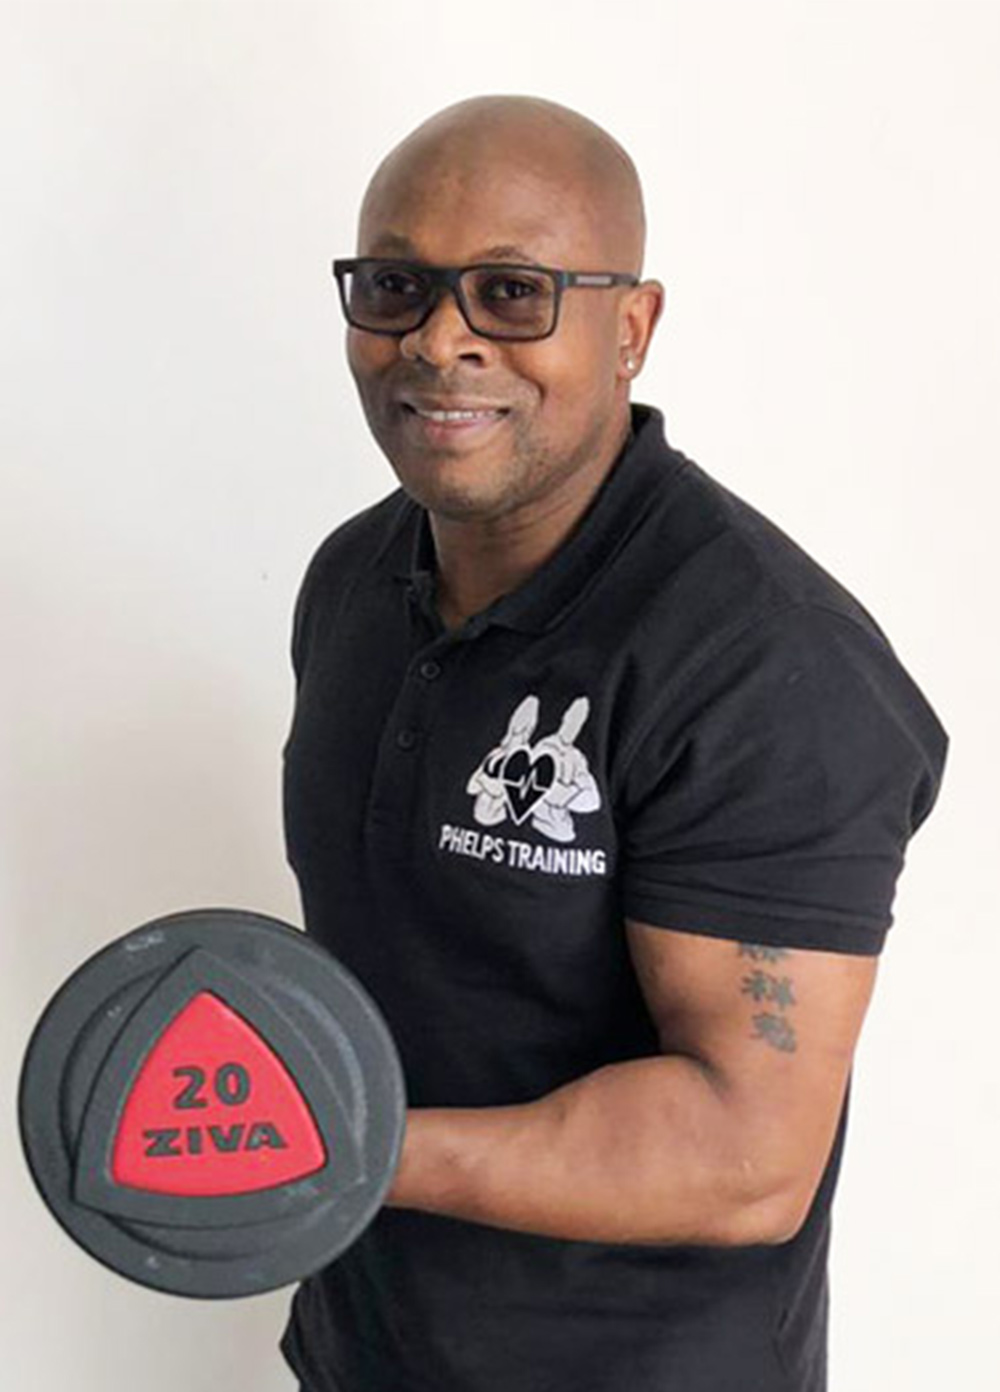 Gary Phelps, Personal Trainer in Coventry